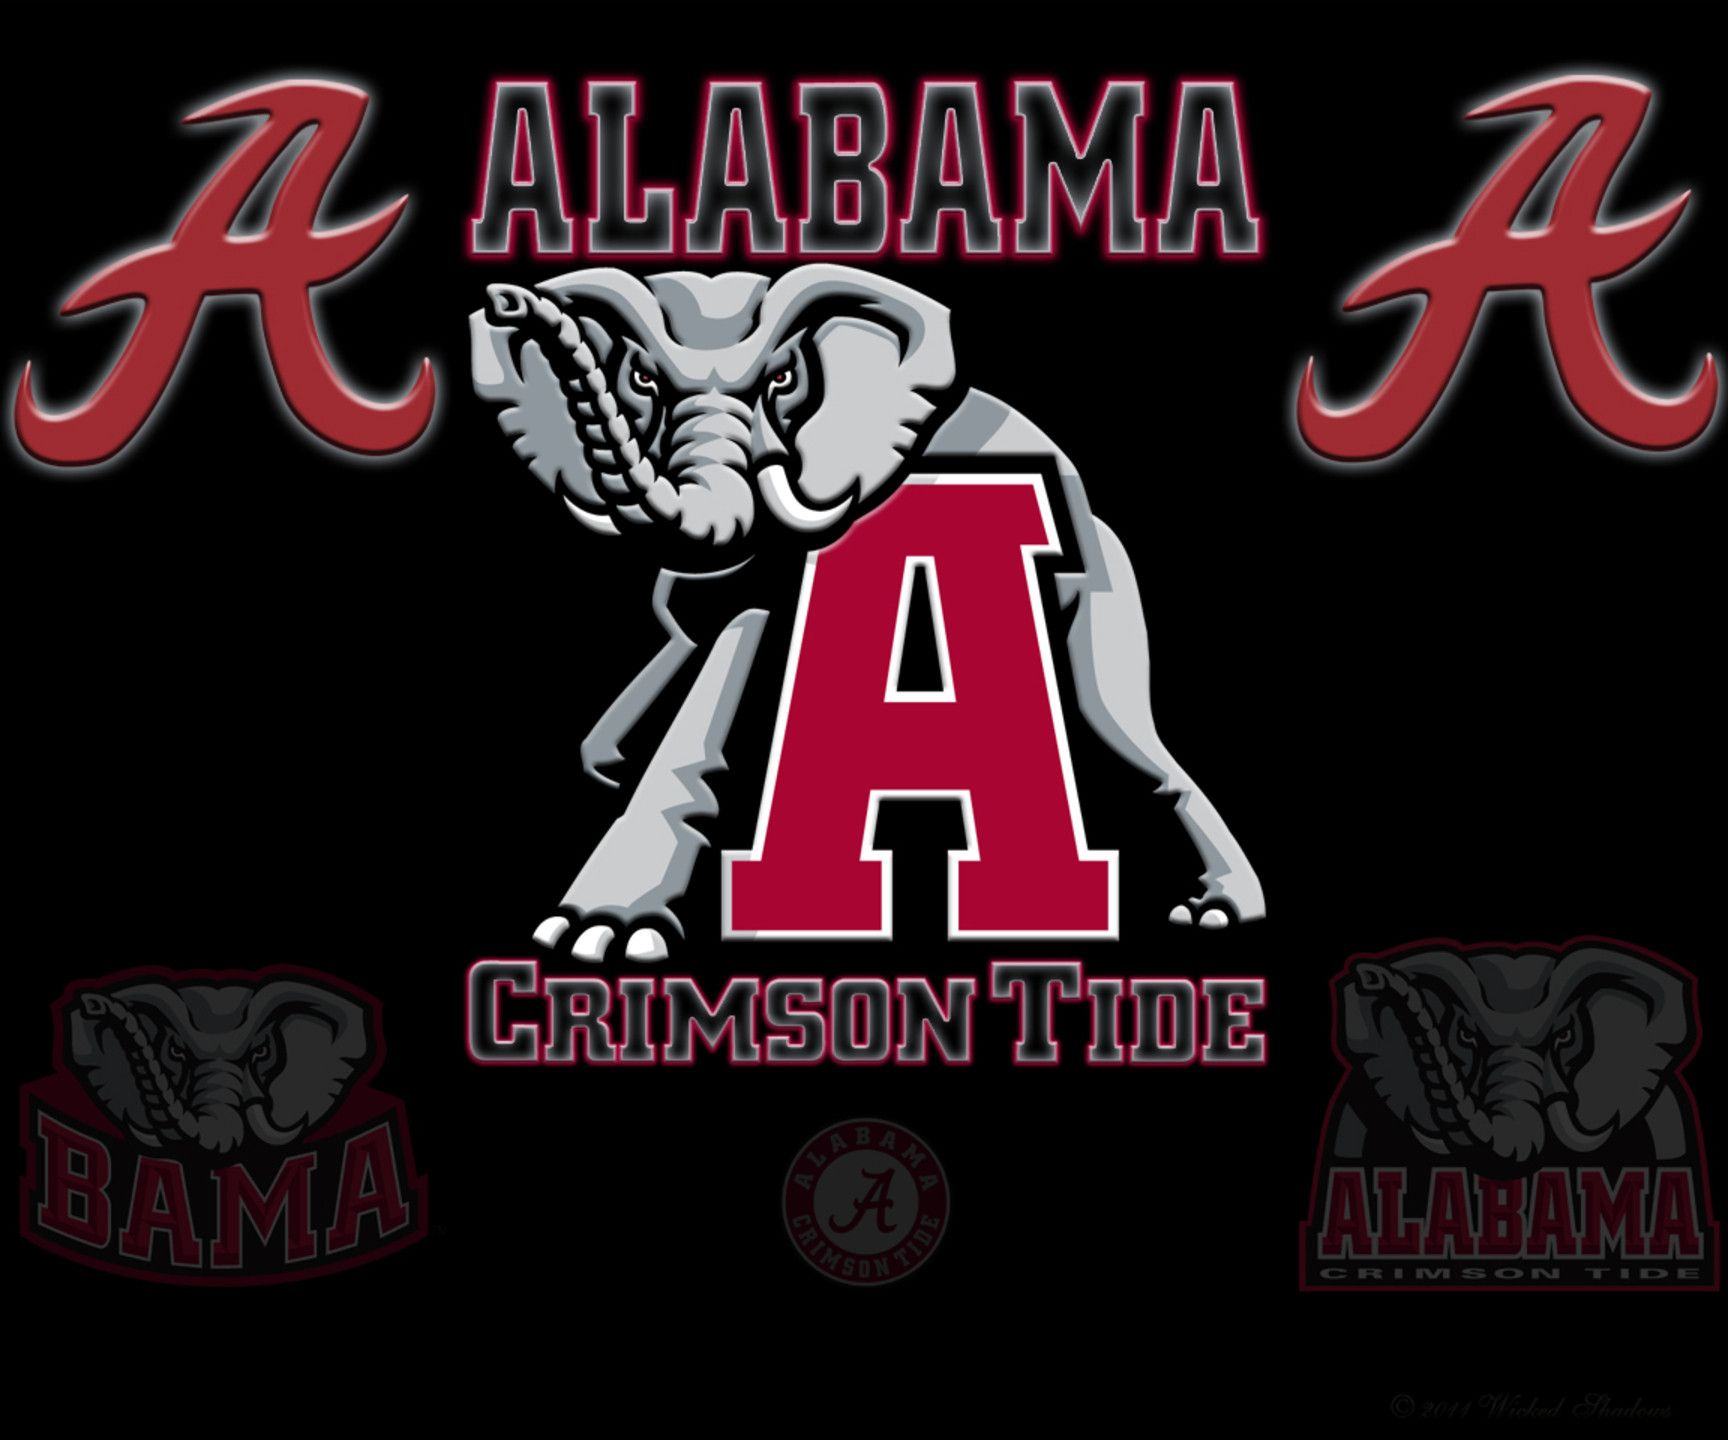 2015 Cool Alabama Football Backgrounds 1728x1440